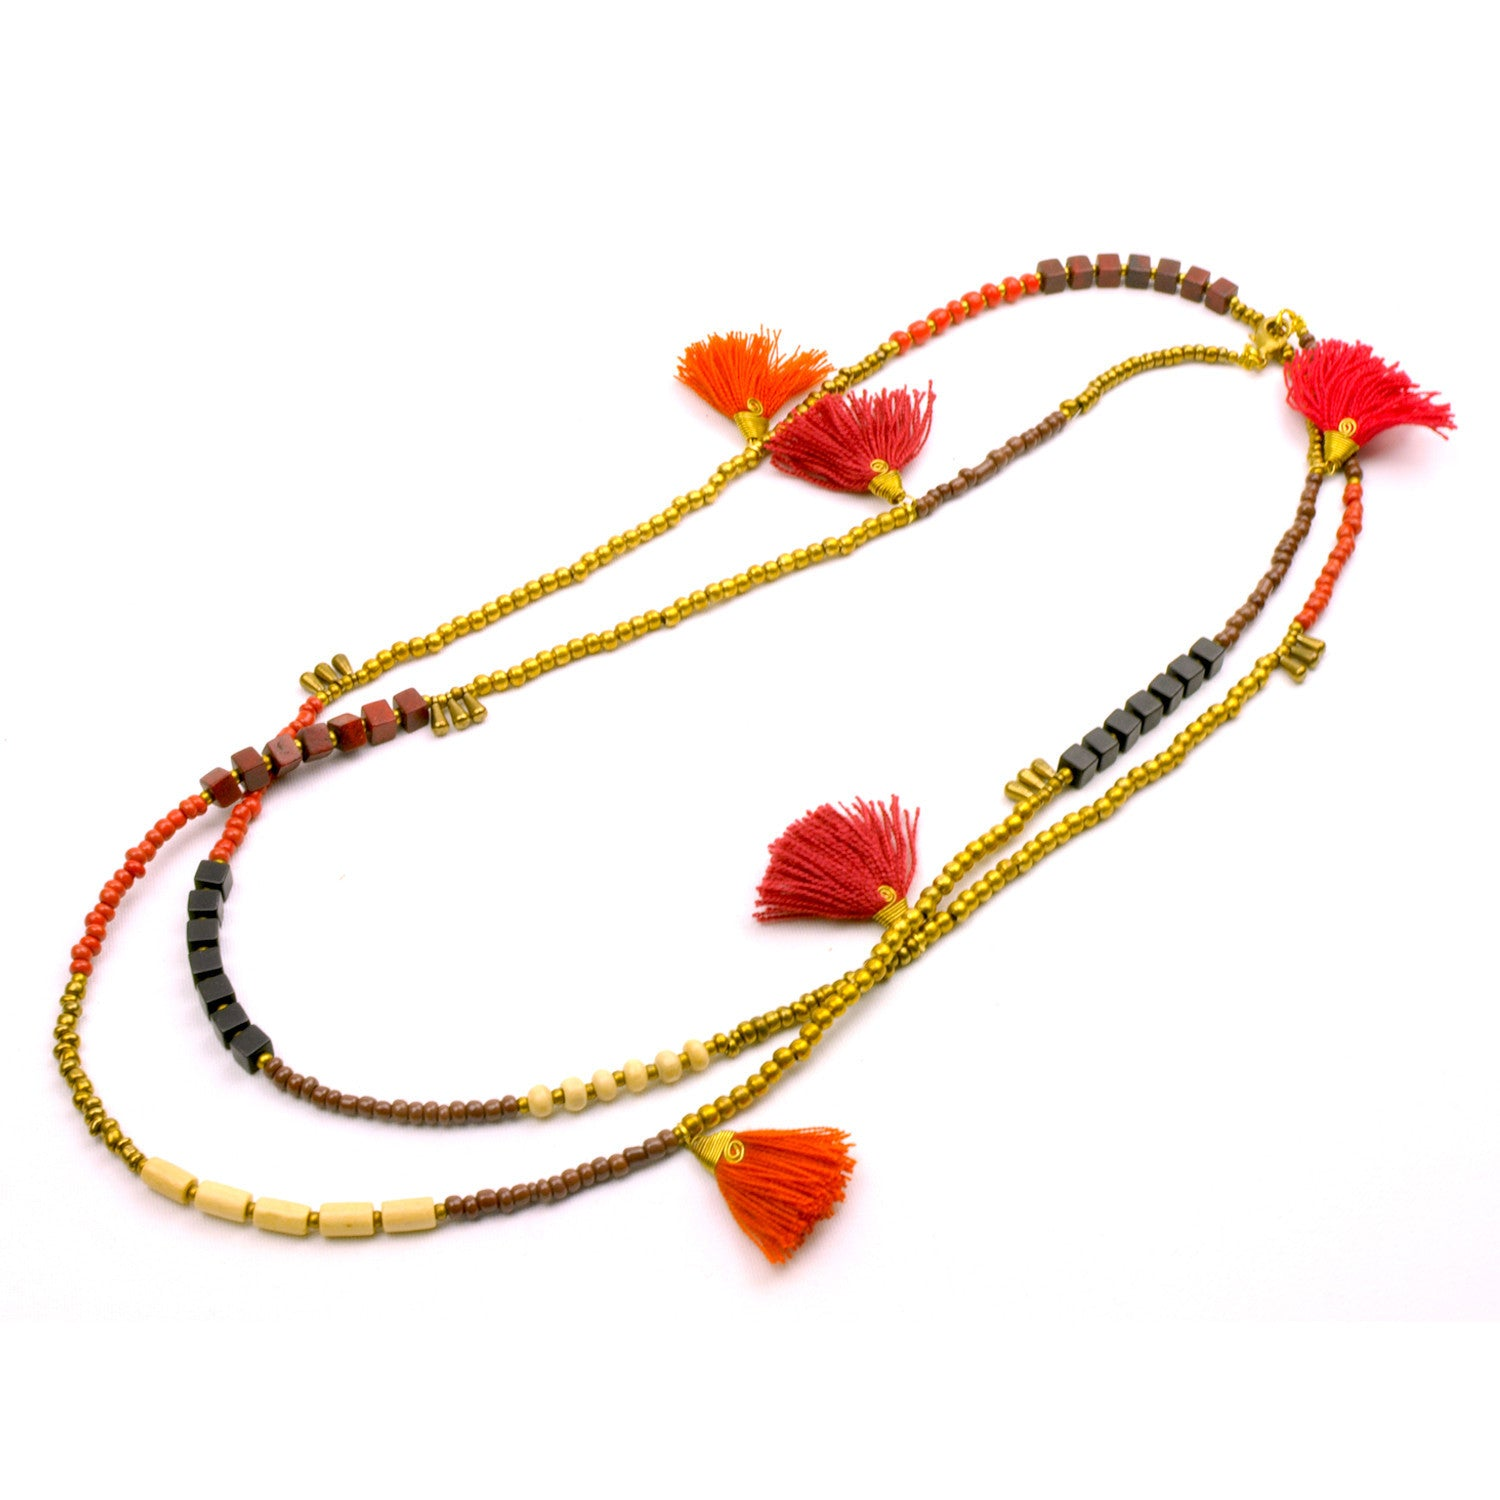 Kerala 3-in-1 Necklace Desert Sun - Global Groove (J)